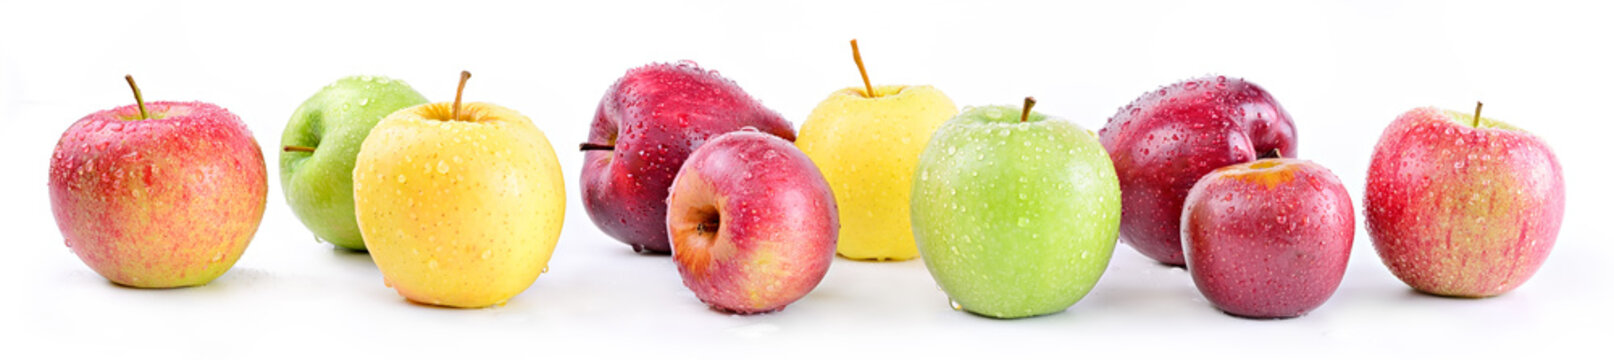 Apple varieties: annurca, stark delicious, fuji, granny smith, golden delicious, royal gala